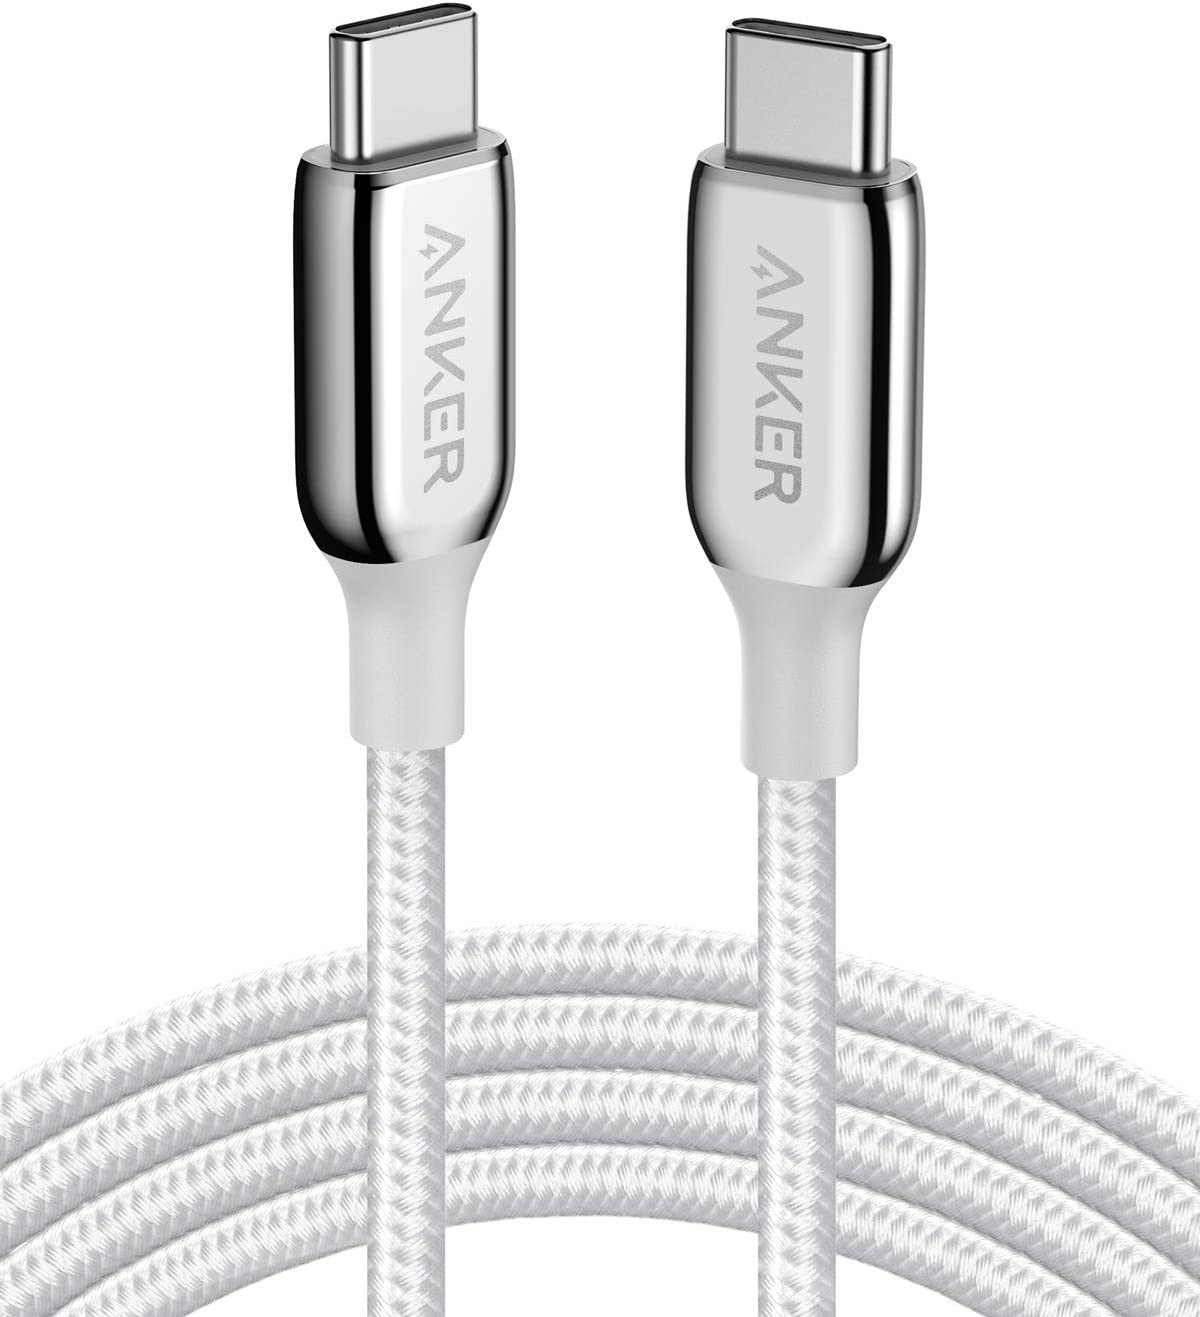 USB C to USB C Cable, Anker Powerline+ plus III US…